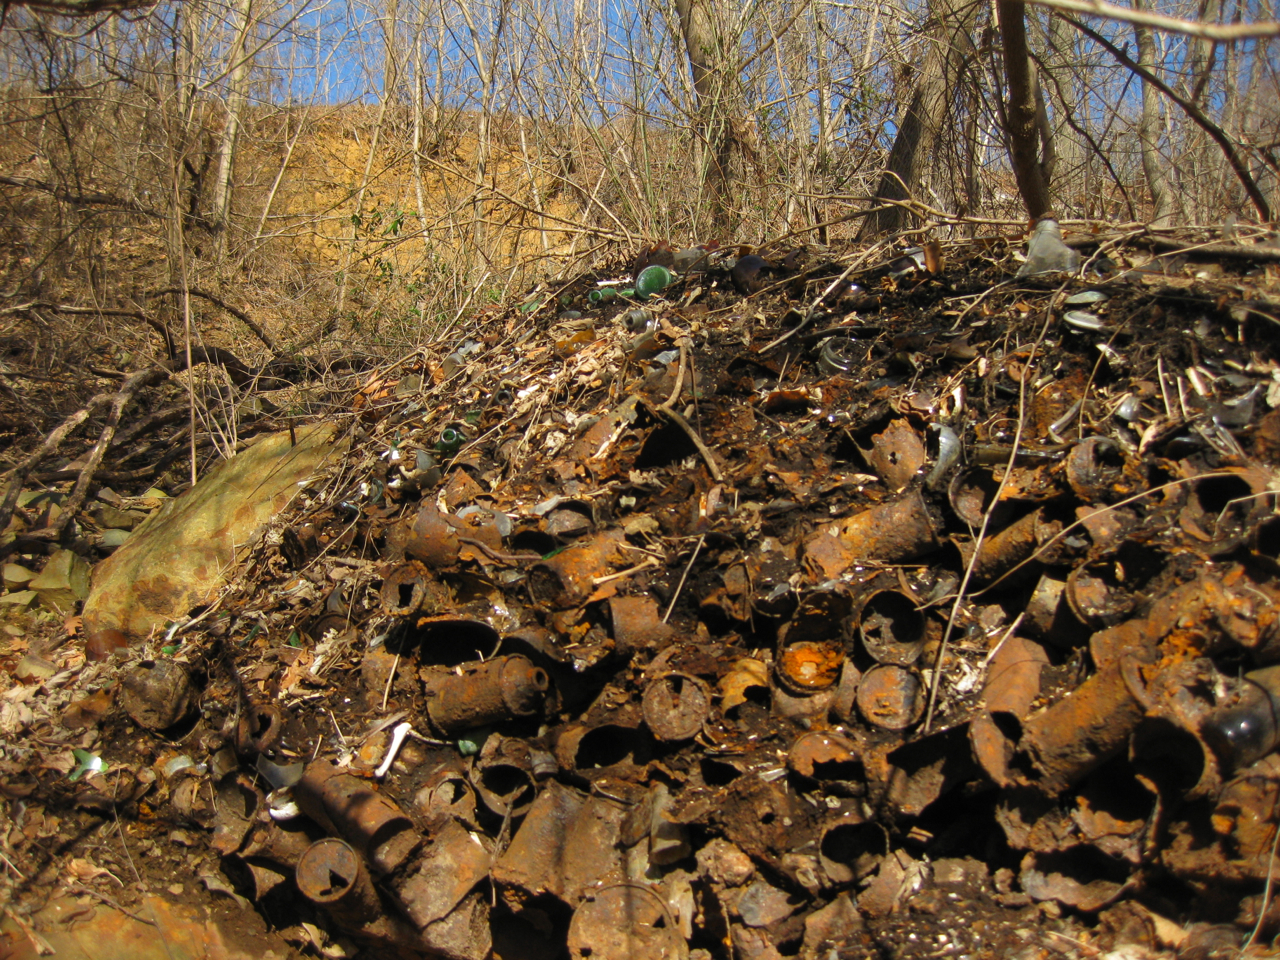 junk pile in the woods